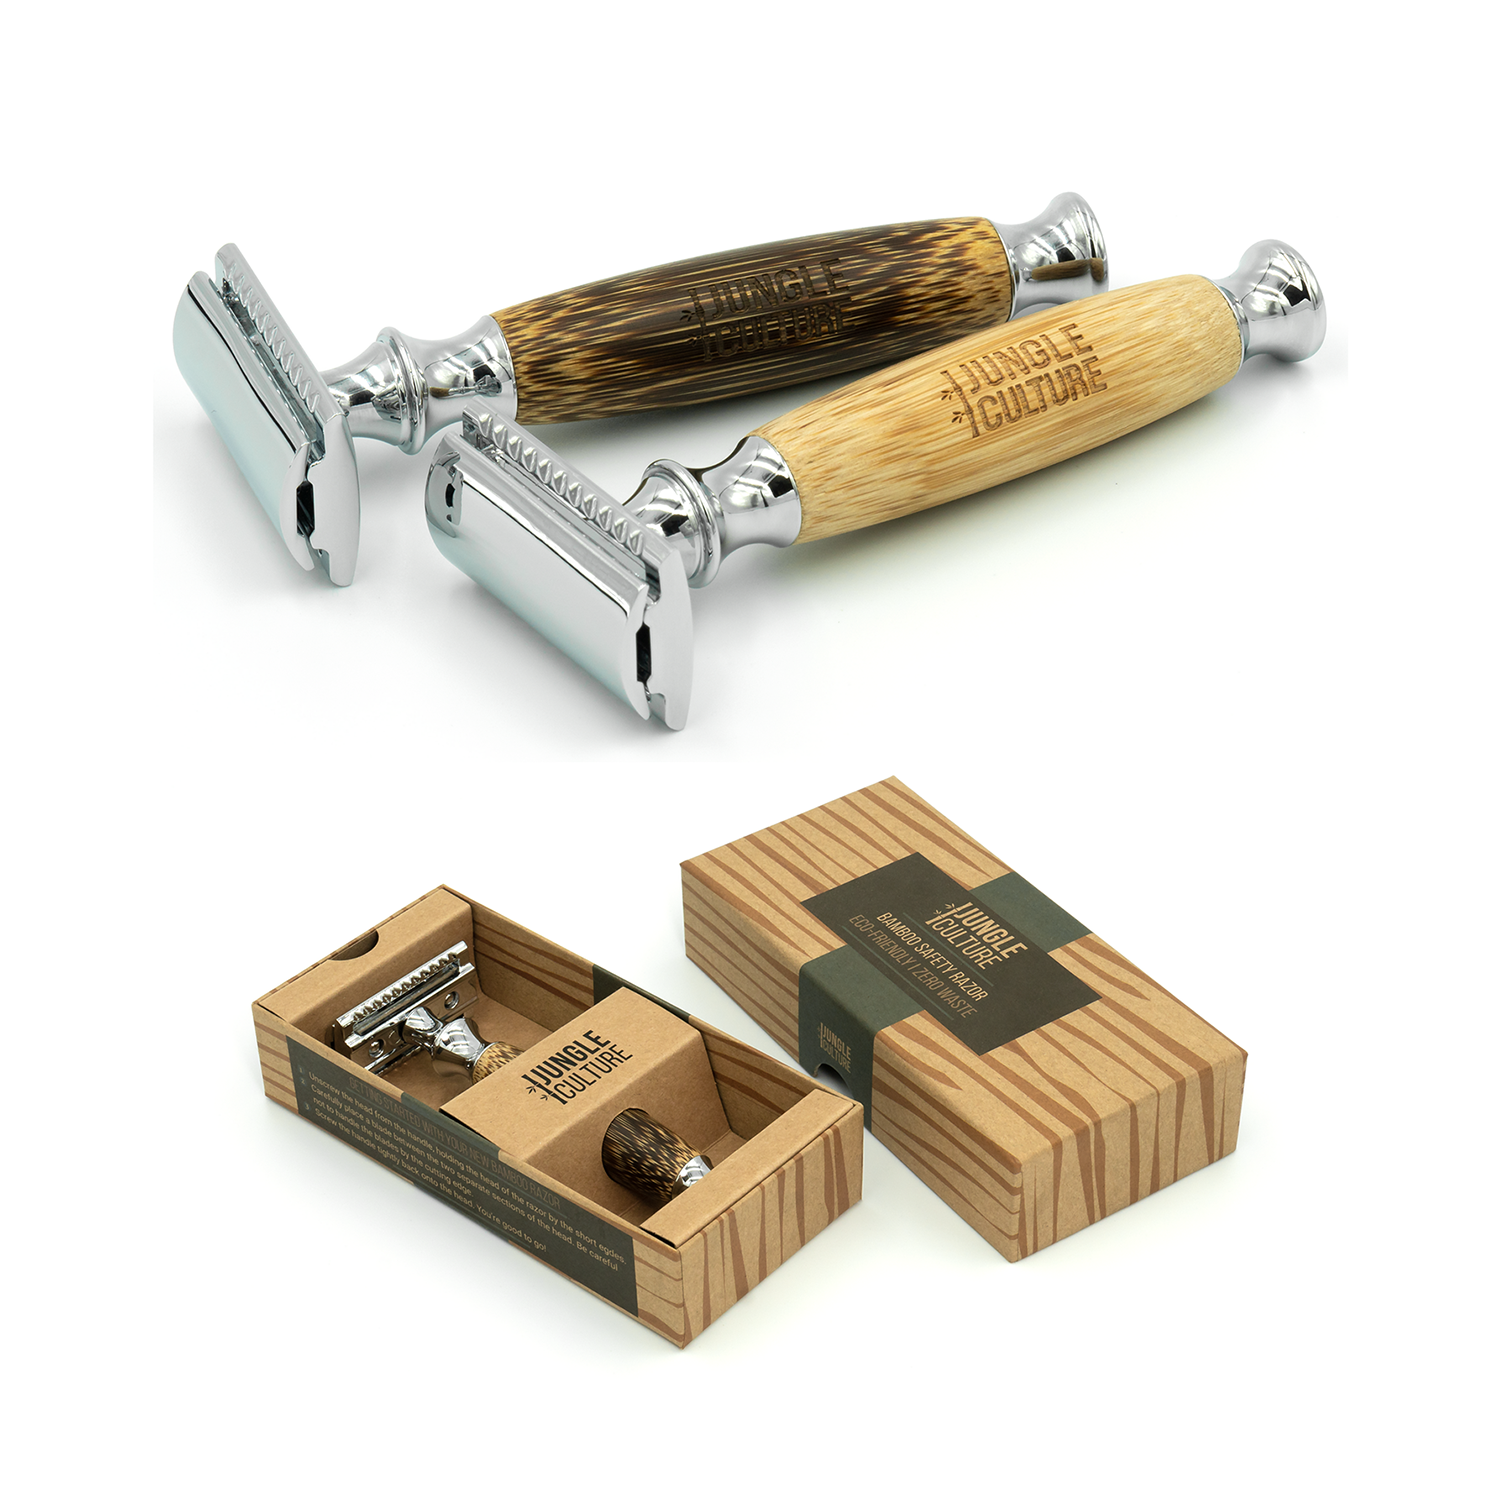 THUMBNAIL-Our reusable safety razor provides a unisex design and a close shave for both men and women..png